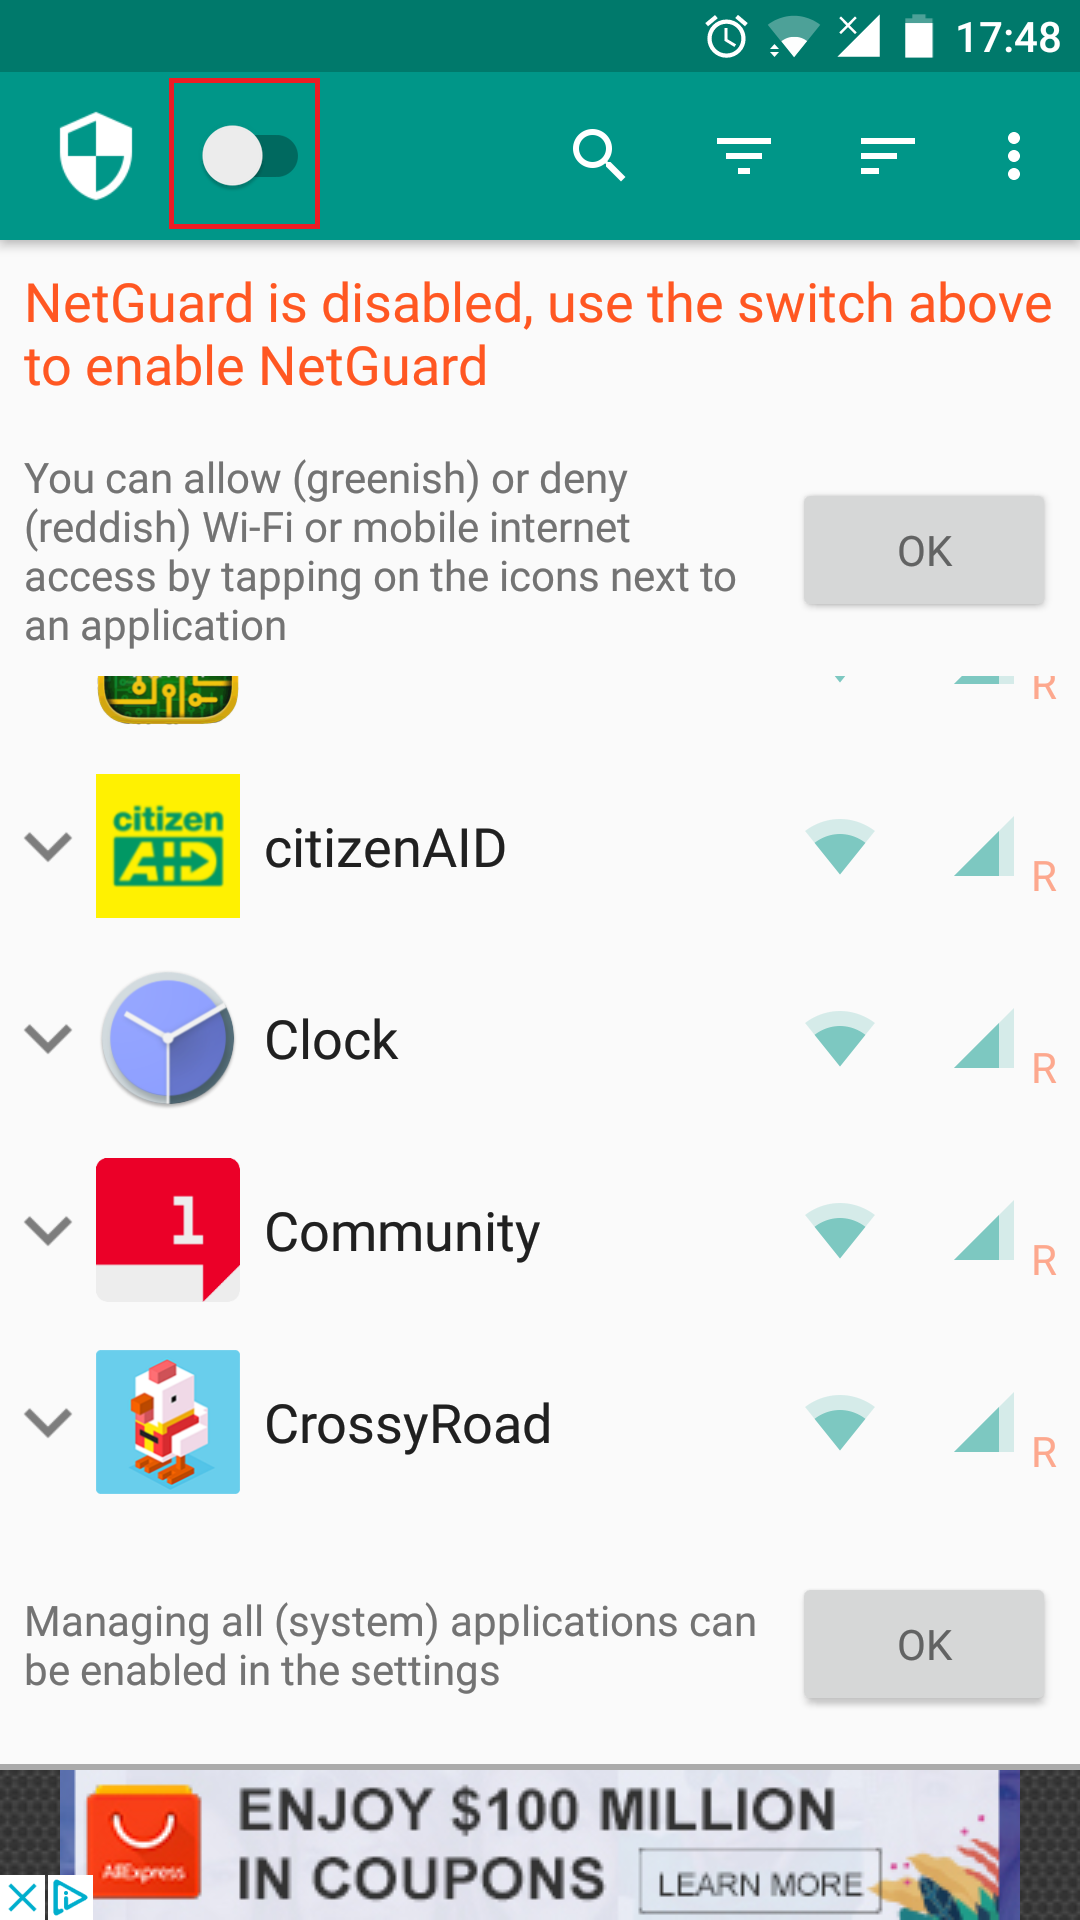 How To Disable or Limit Internet Access For Any App On Android